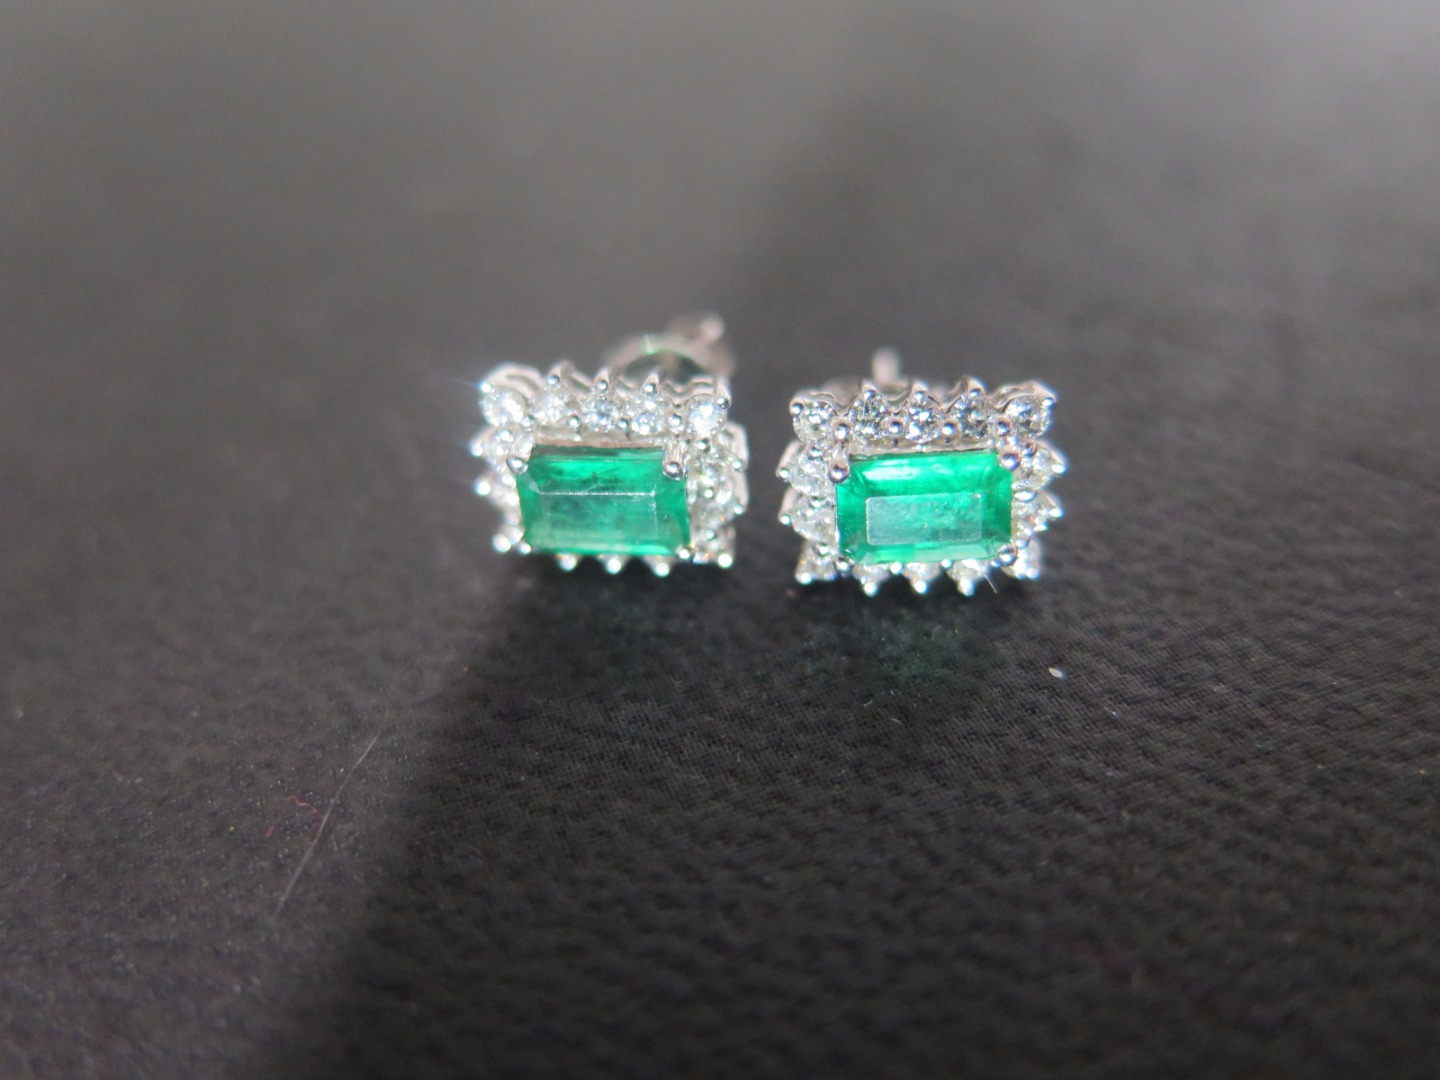 A pair of 14ct white gold emerald and diamond earrings - approx weight 1.9...